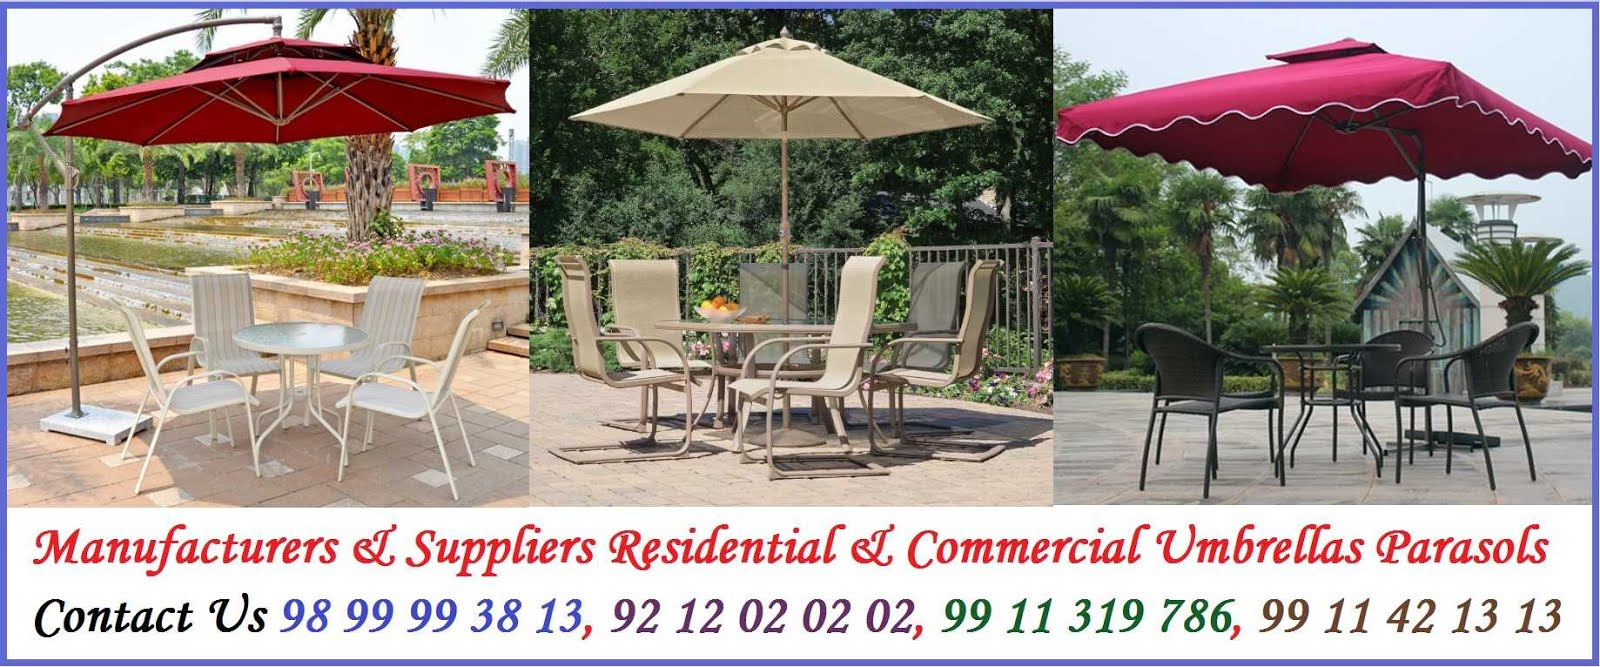 Manufacturers & Suppliers of Residential, Commercial & Outdoor Umbrellas